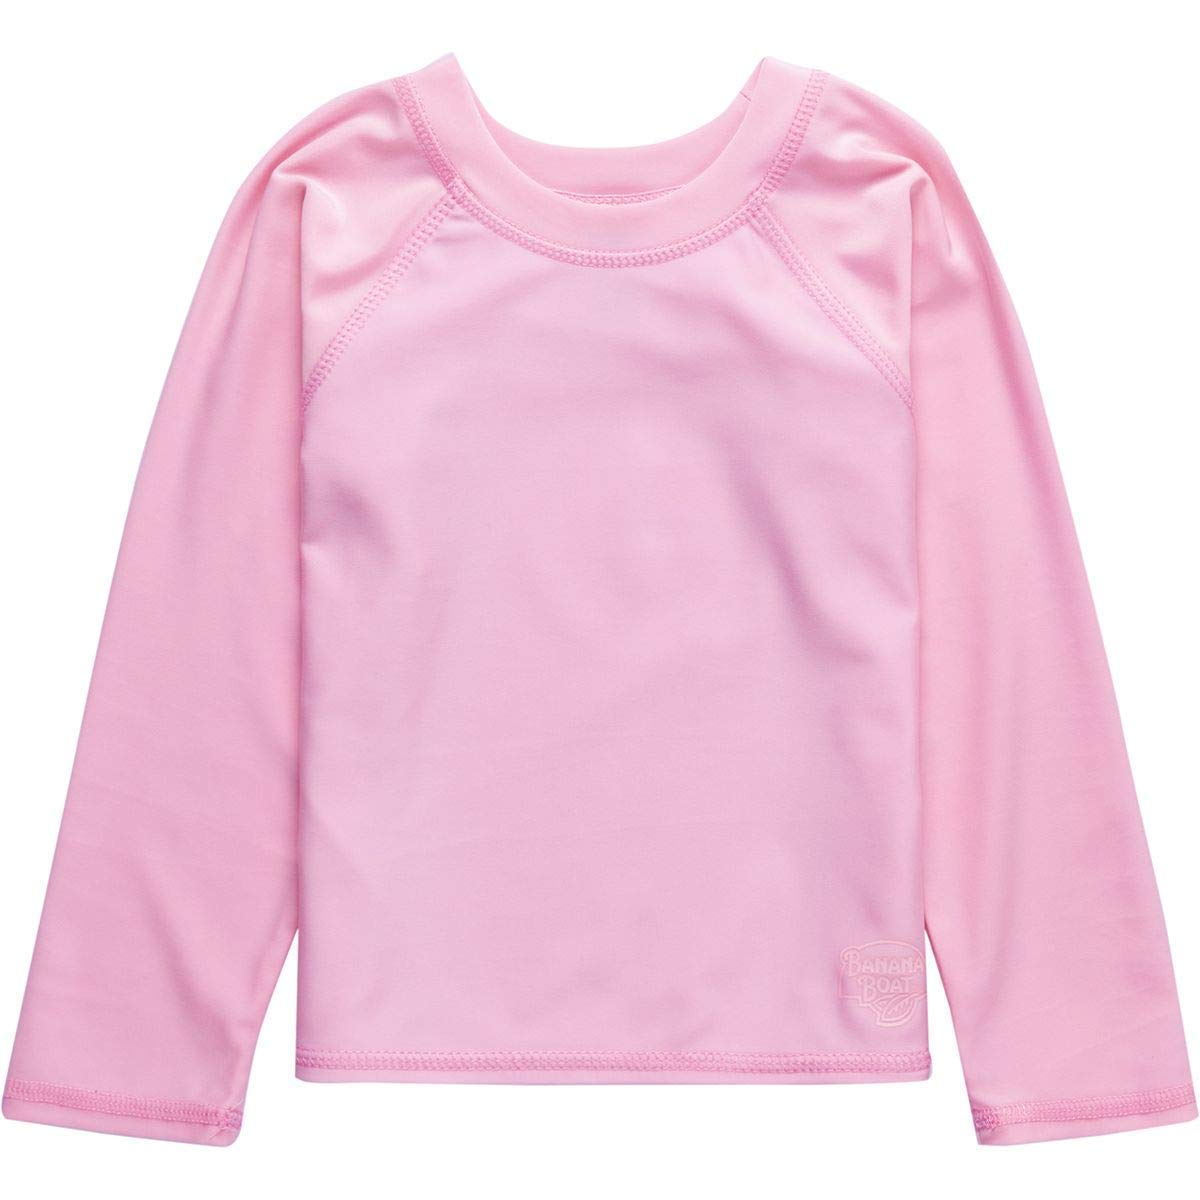 Banana Boat Girls and Boys Wetsuit with Rash Guard and Long Sleeves Pink by Banana Boat